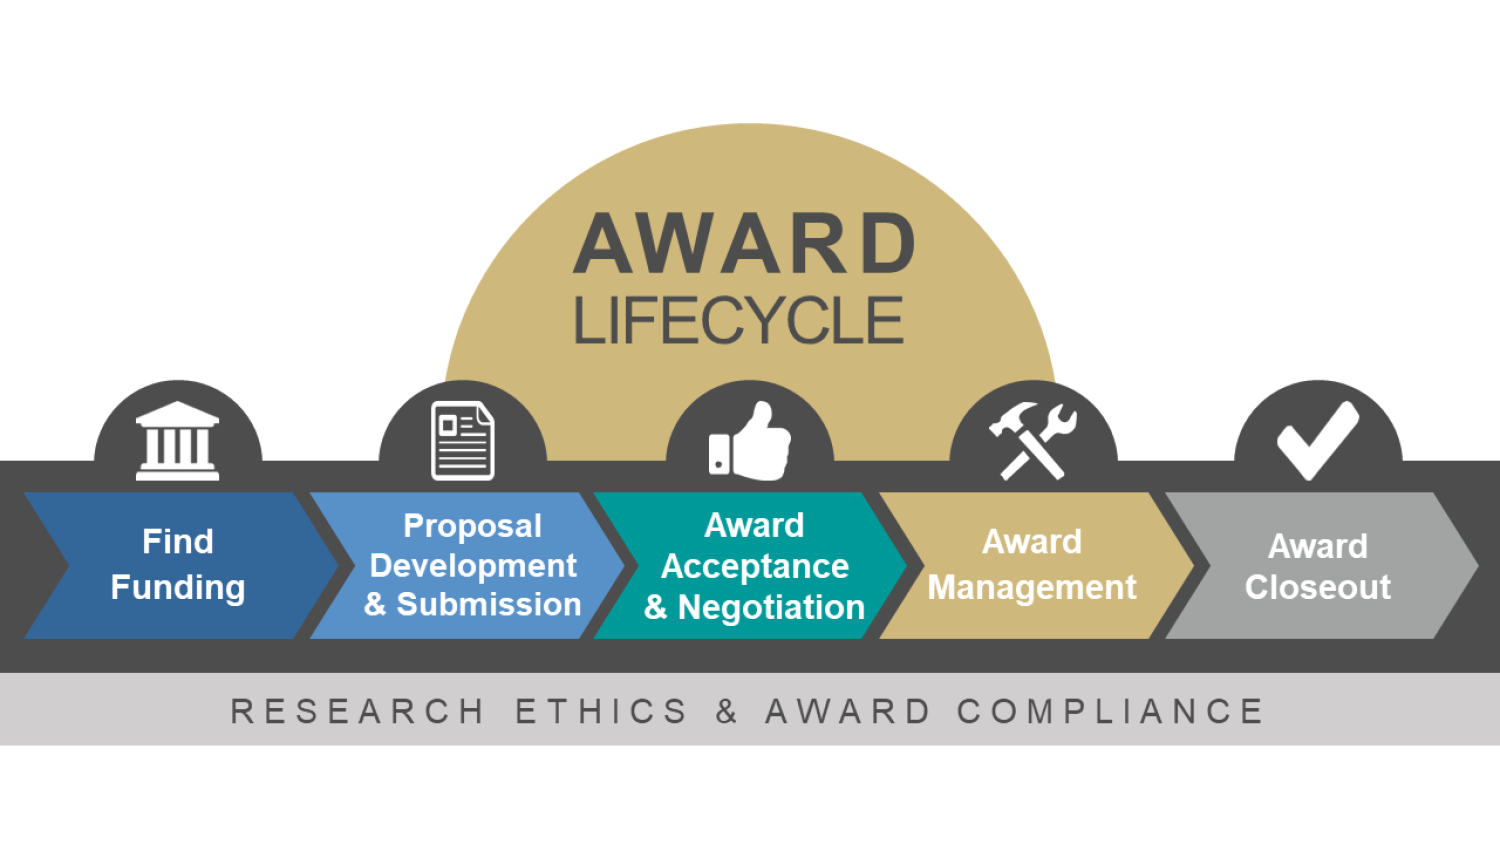 Lifecycle of an Award graphic